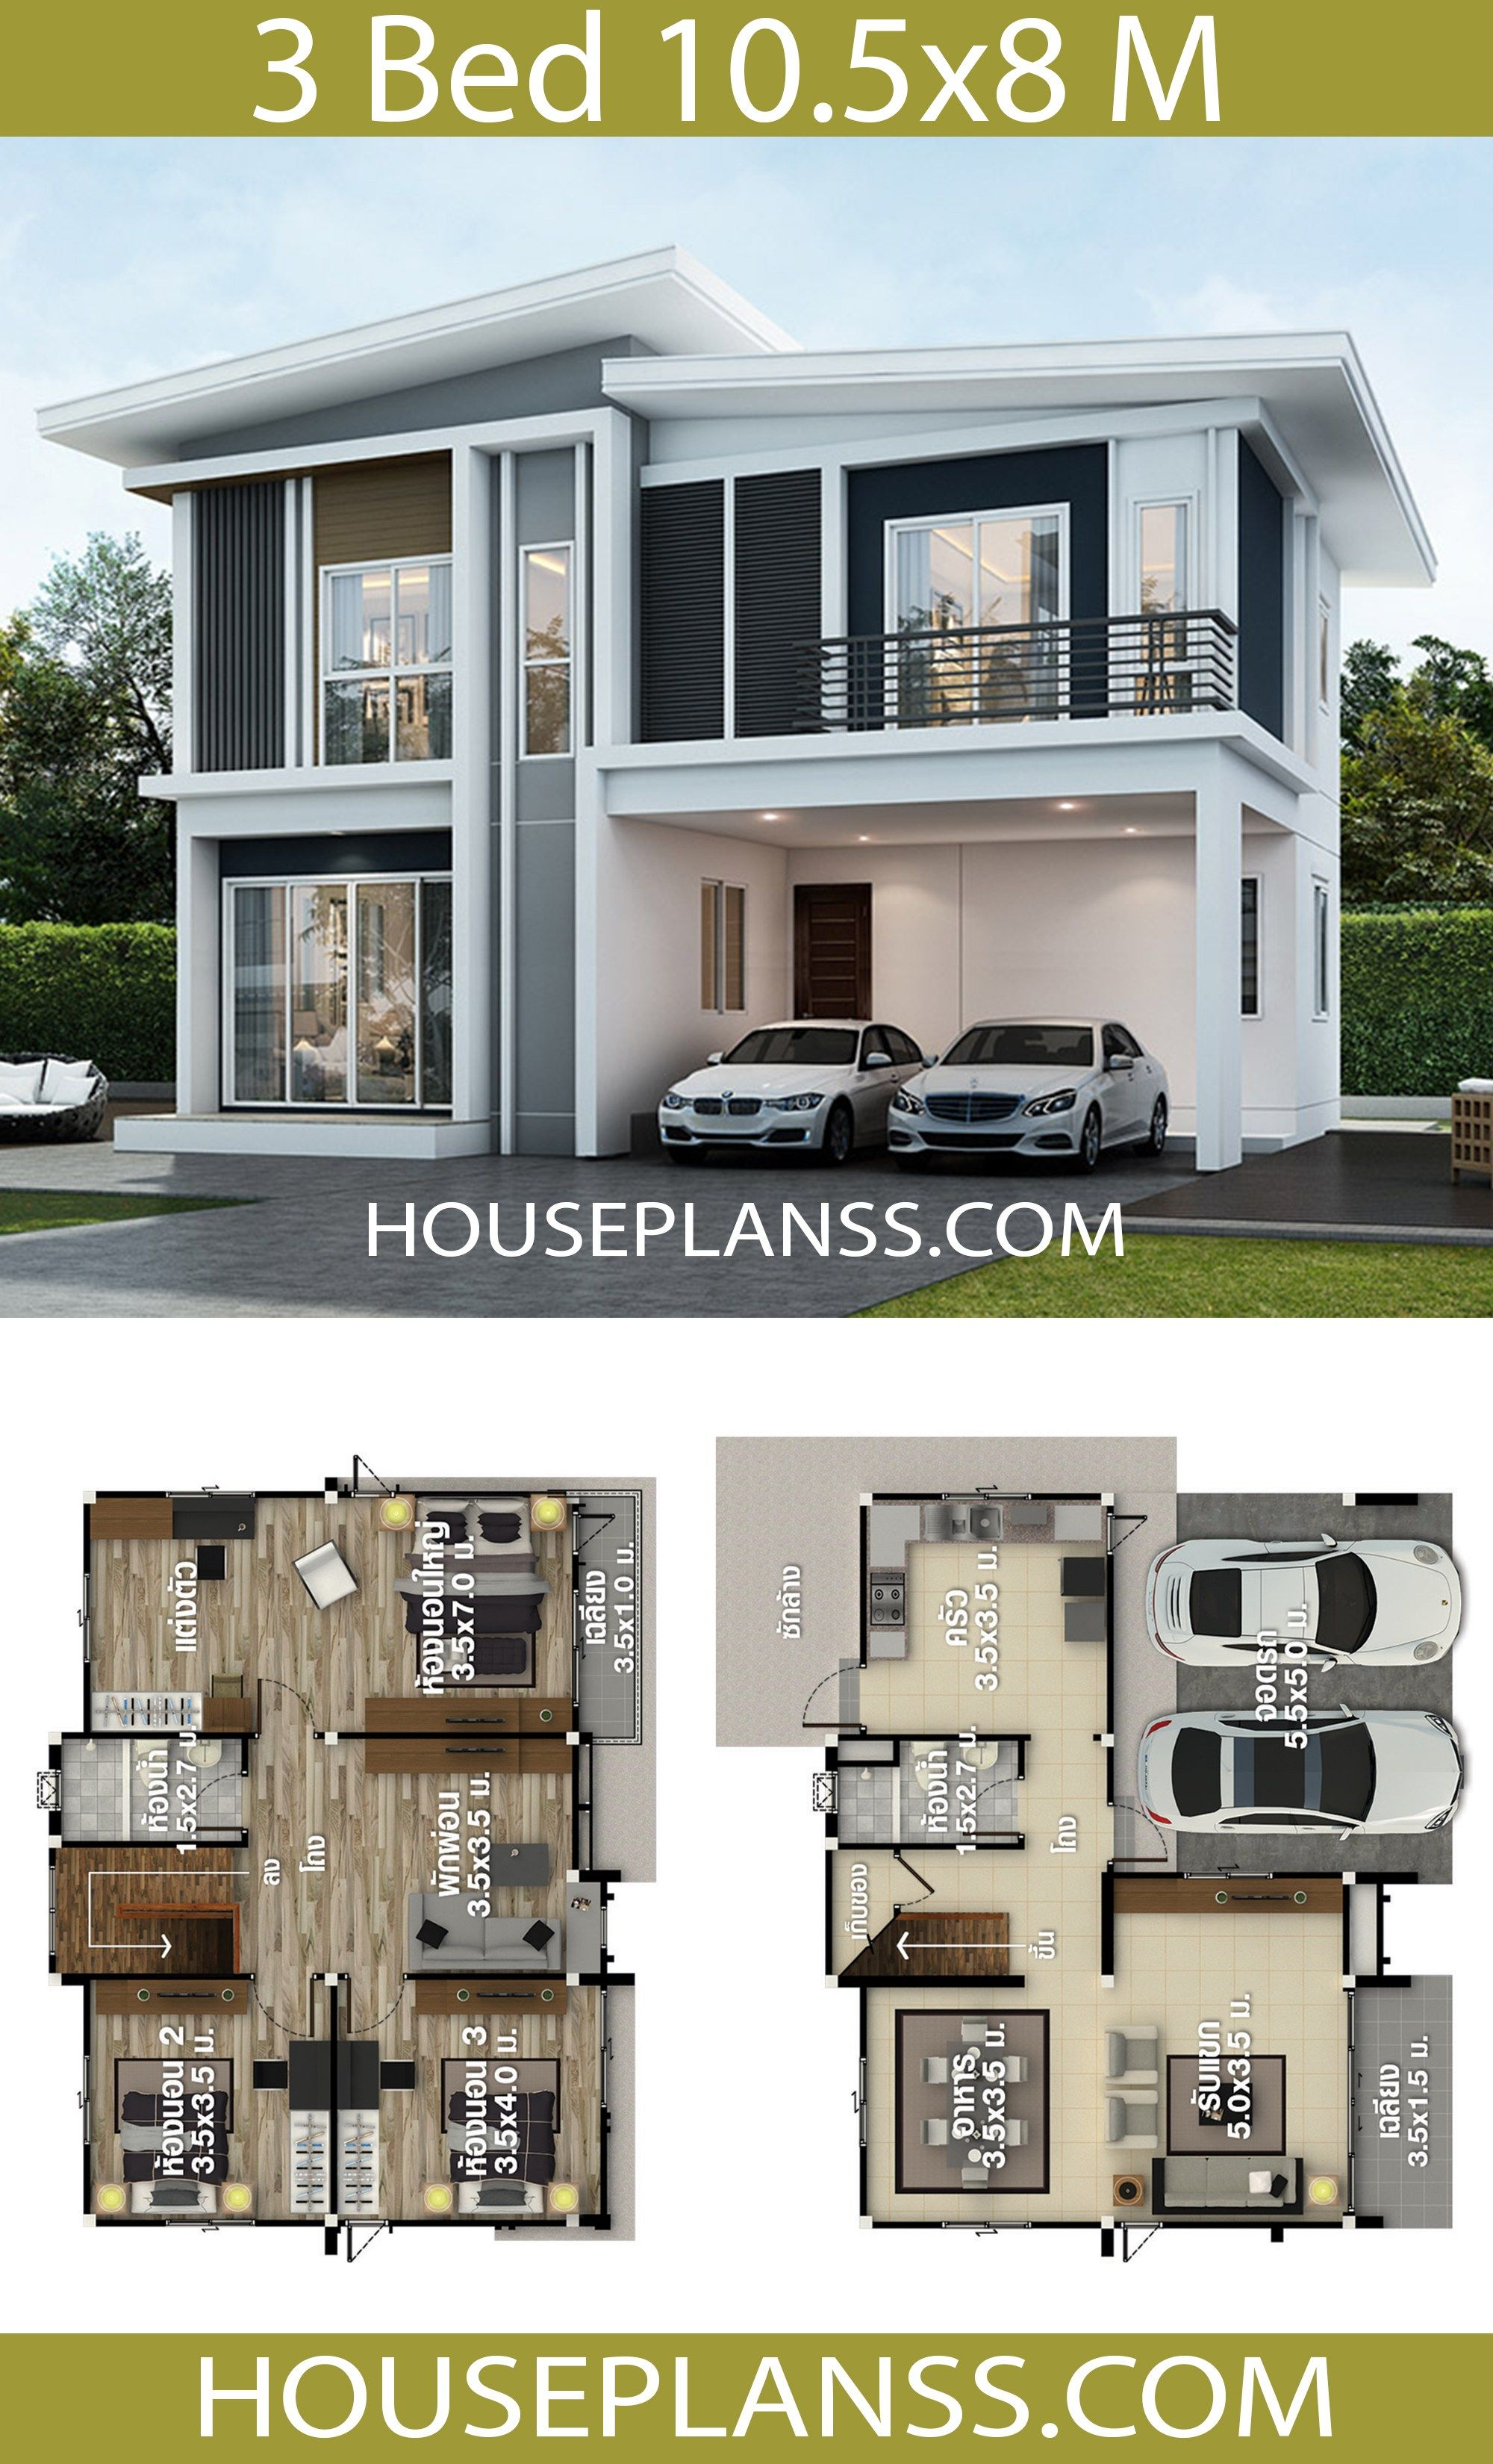 House Design Plans Idea 10 5x8 With 3 Bedroomsthe House Has Building Size M X M 10 50 X 8 00land In 2020 Two Story House Design Model House Plan House Front Design